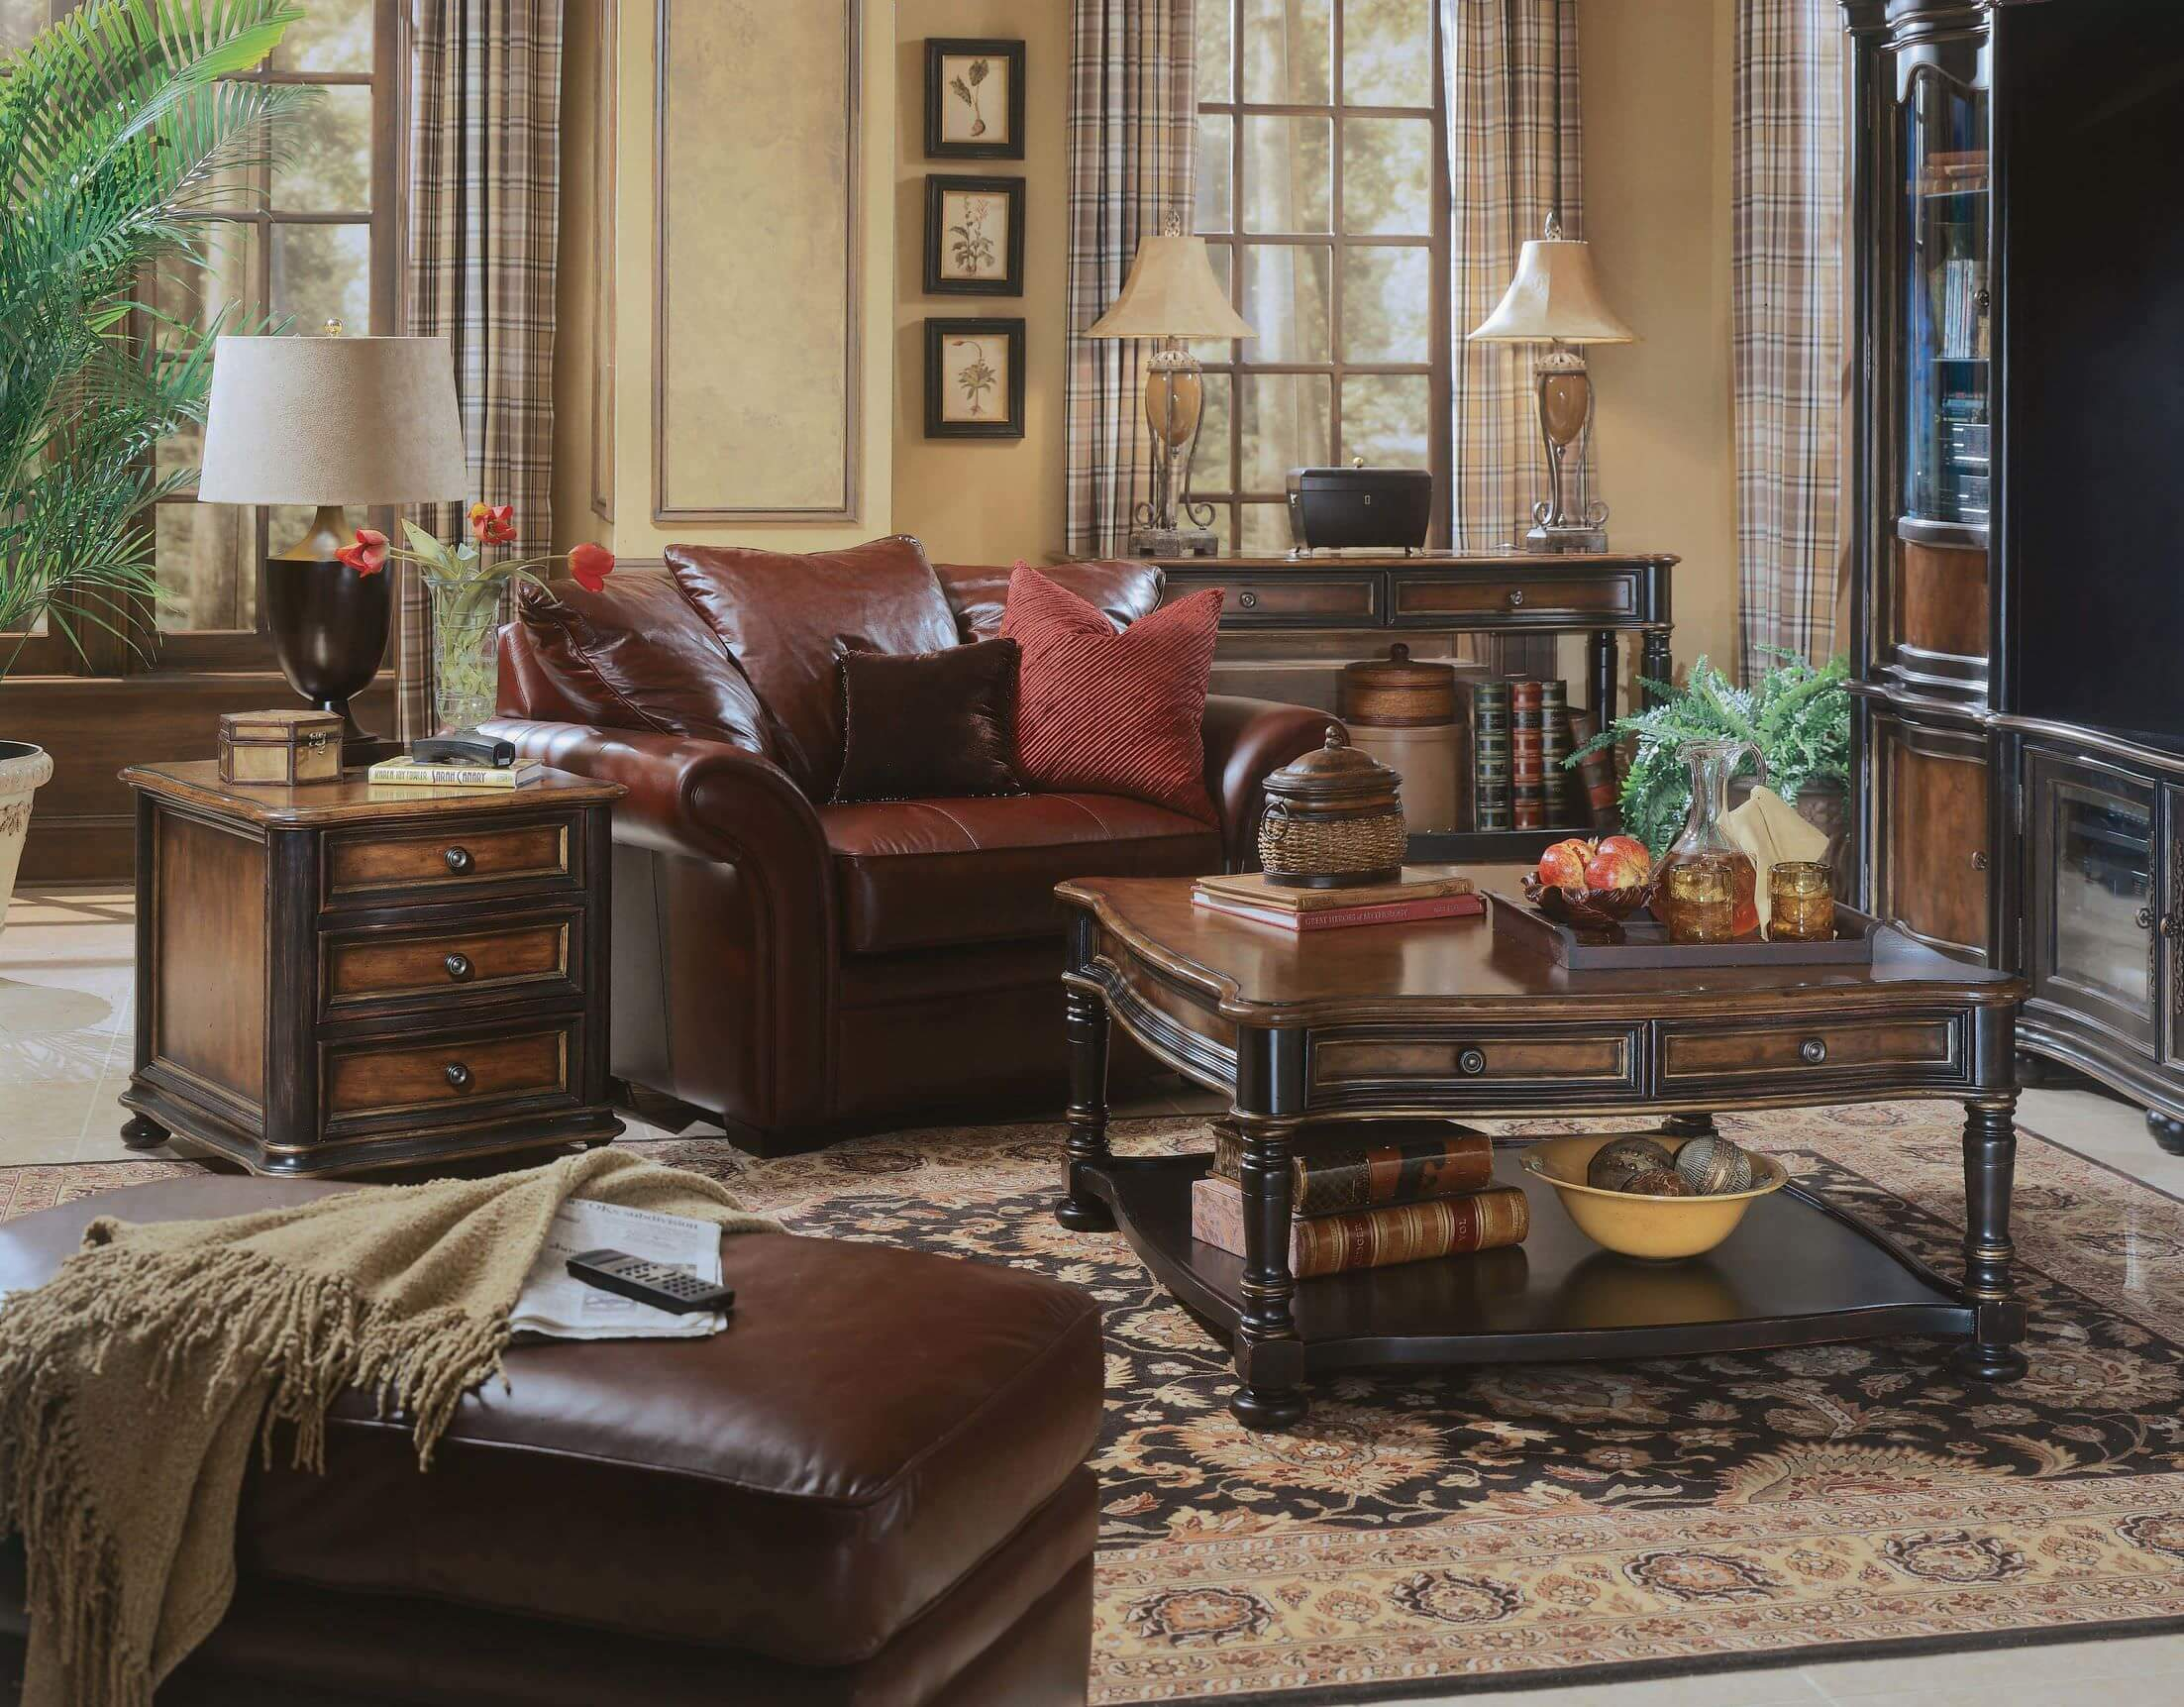 If you want to give your living room an antique feeling, why not play with both dark and light shades of brown? Use light brown colors for your walls and accentuate it with dark brown furniture and pieces.